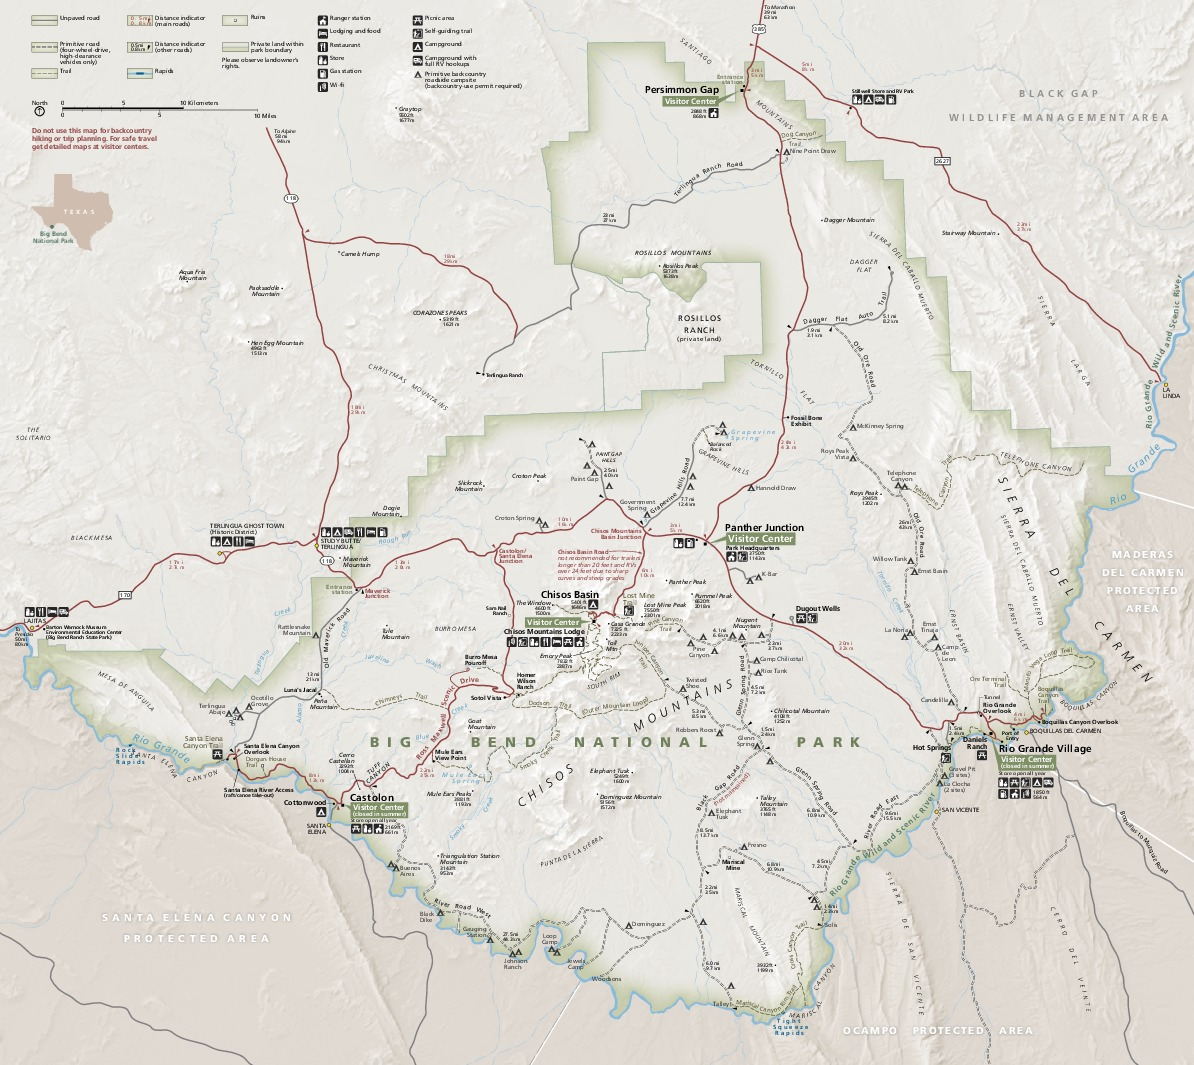 big-bend-national-park-map.pdf